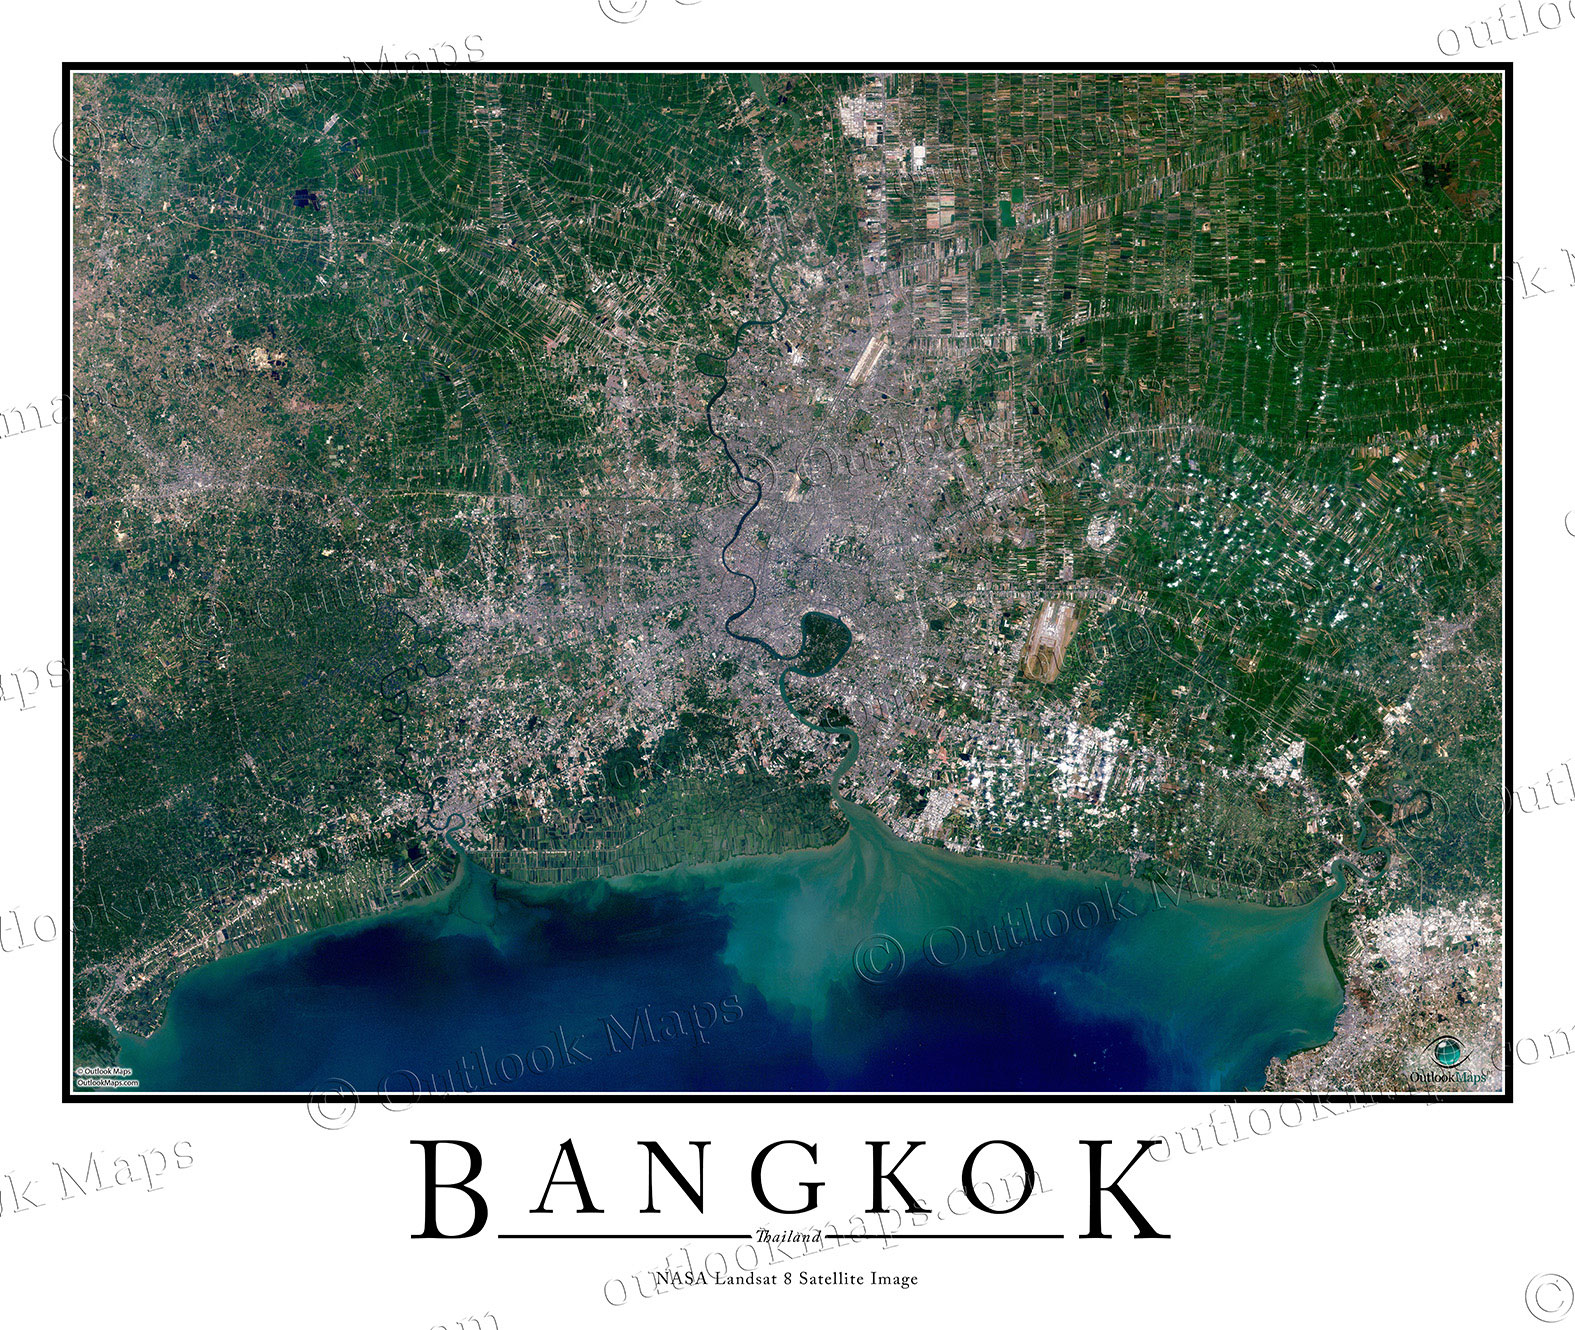 framed world map for wall with Bangkok Satellite Map on Classic Premier 3d World Wall Map Poster Mural as well Landscape Poster Mockup together with San Francisco Downtown Map moreover Eugene Downtown Map additionally Castle Rock Enhanced Lake Wall Map.